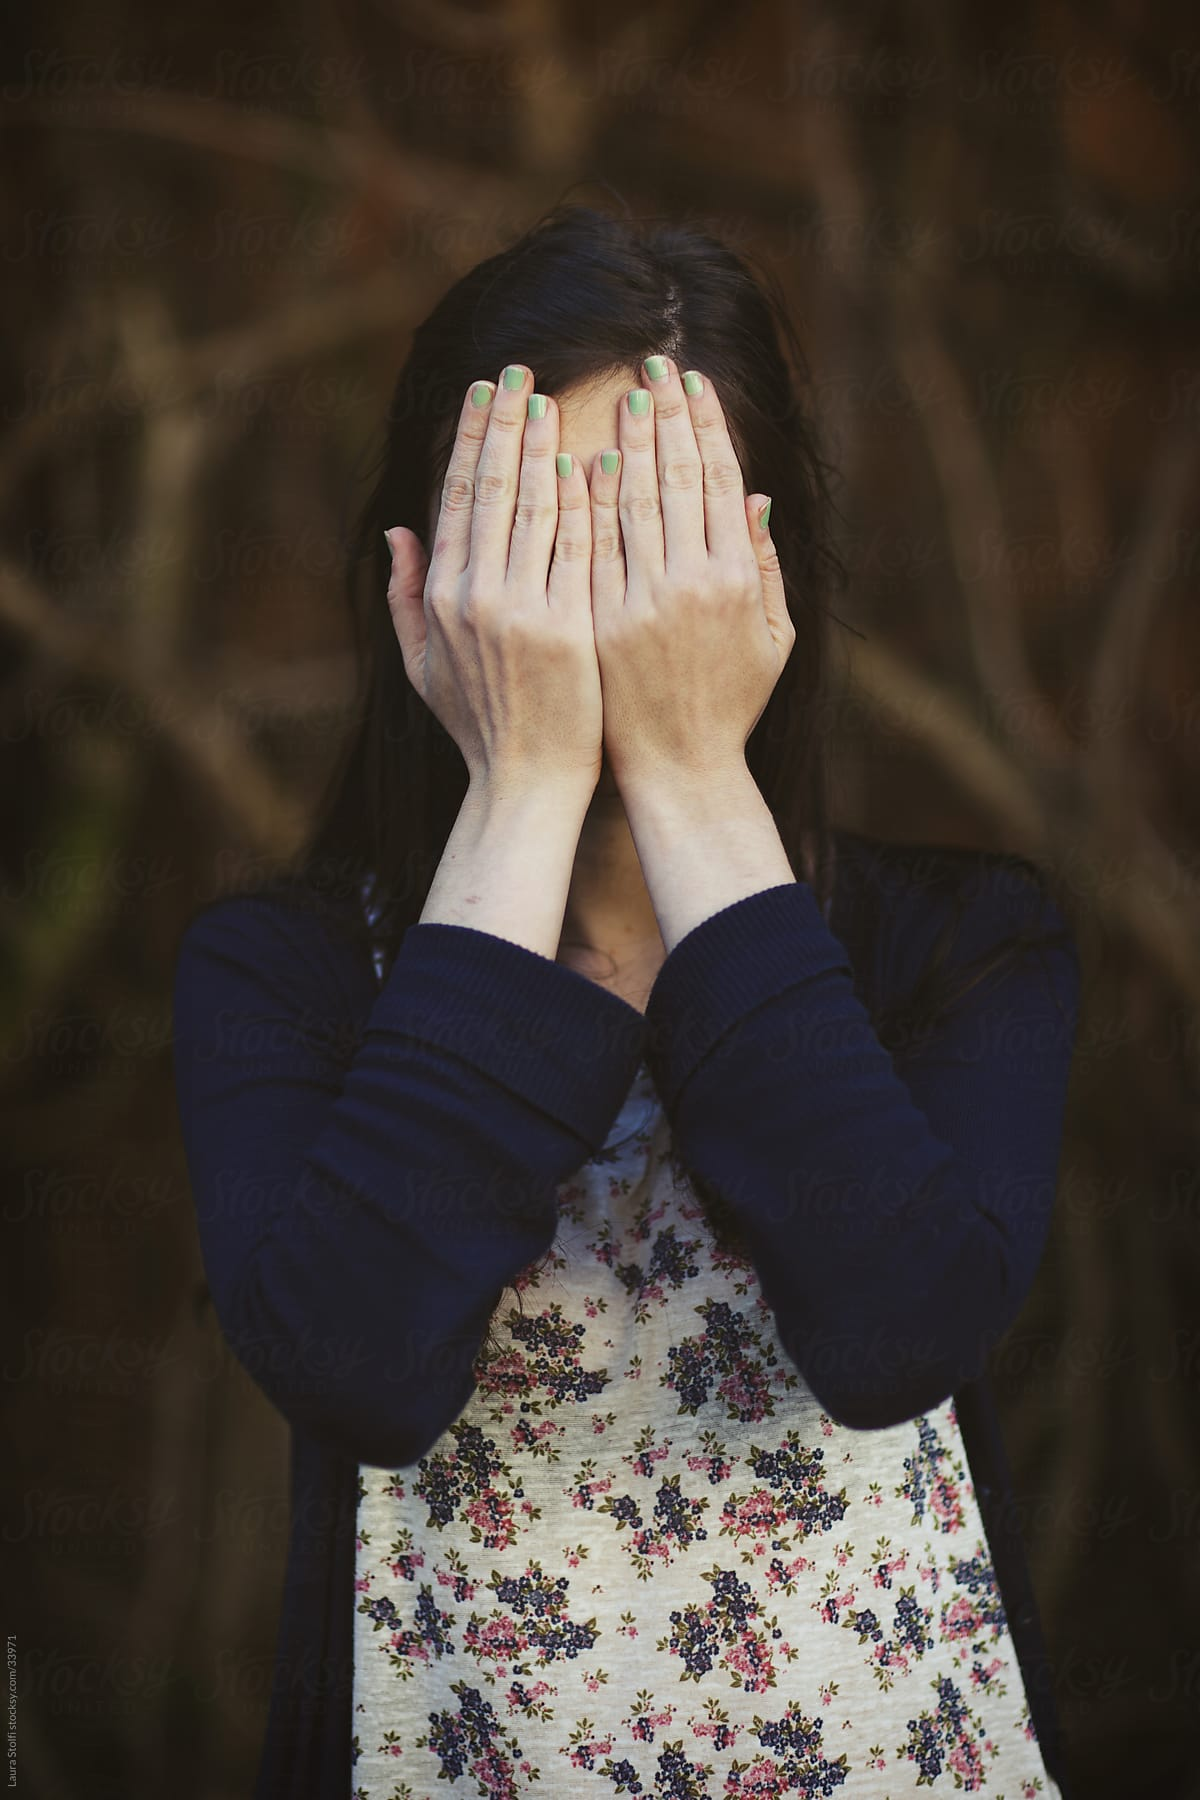 e16f64f7ee05b Stock Photo - Young Woman Covering Her Face With Her Hands